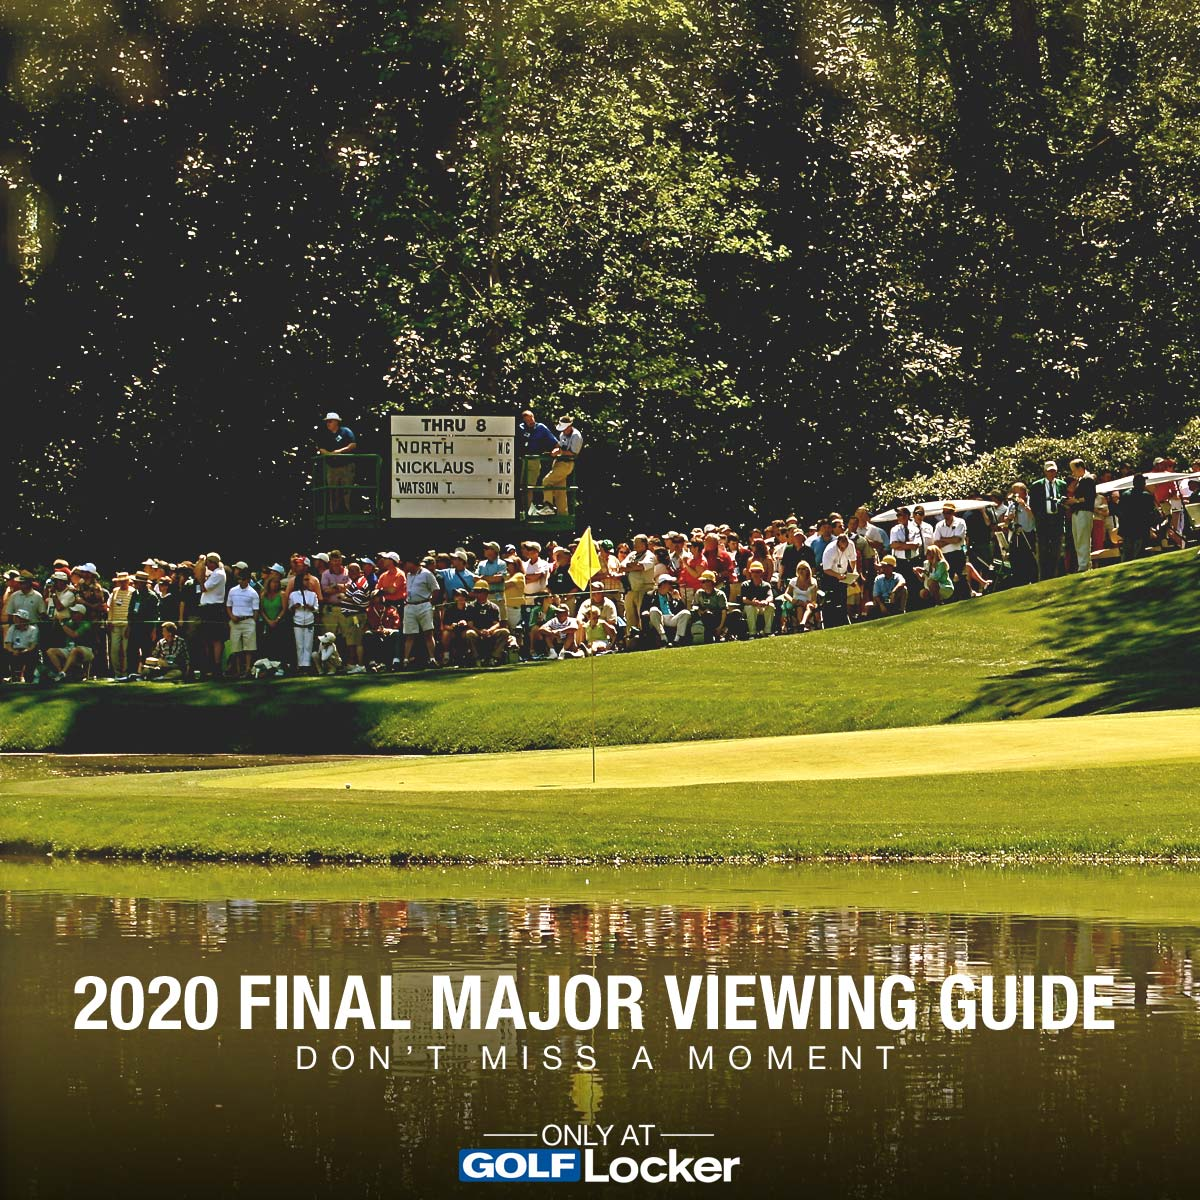 2020 Final Major Viewing Guide